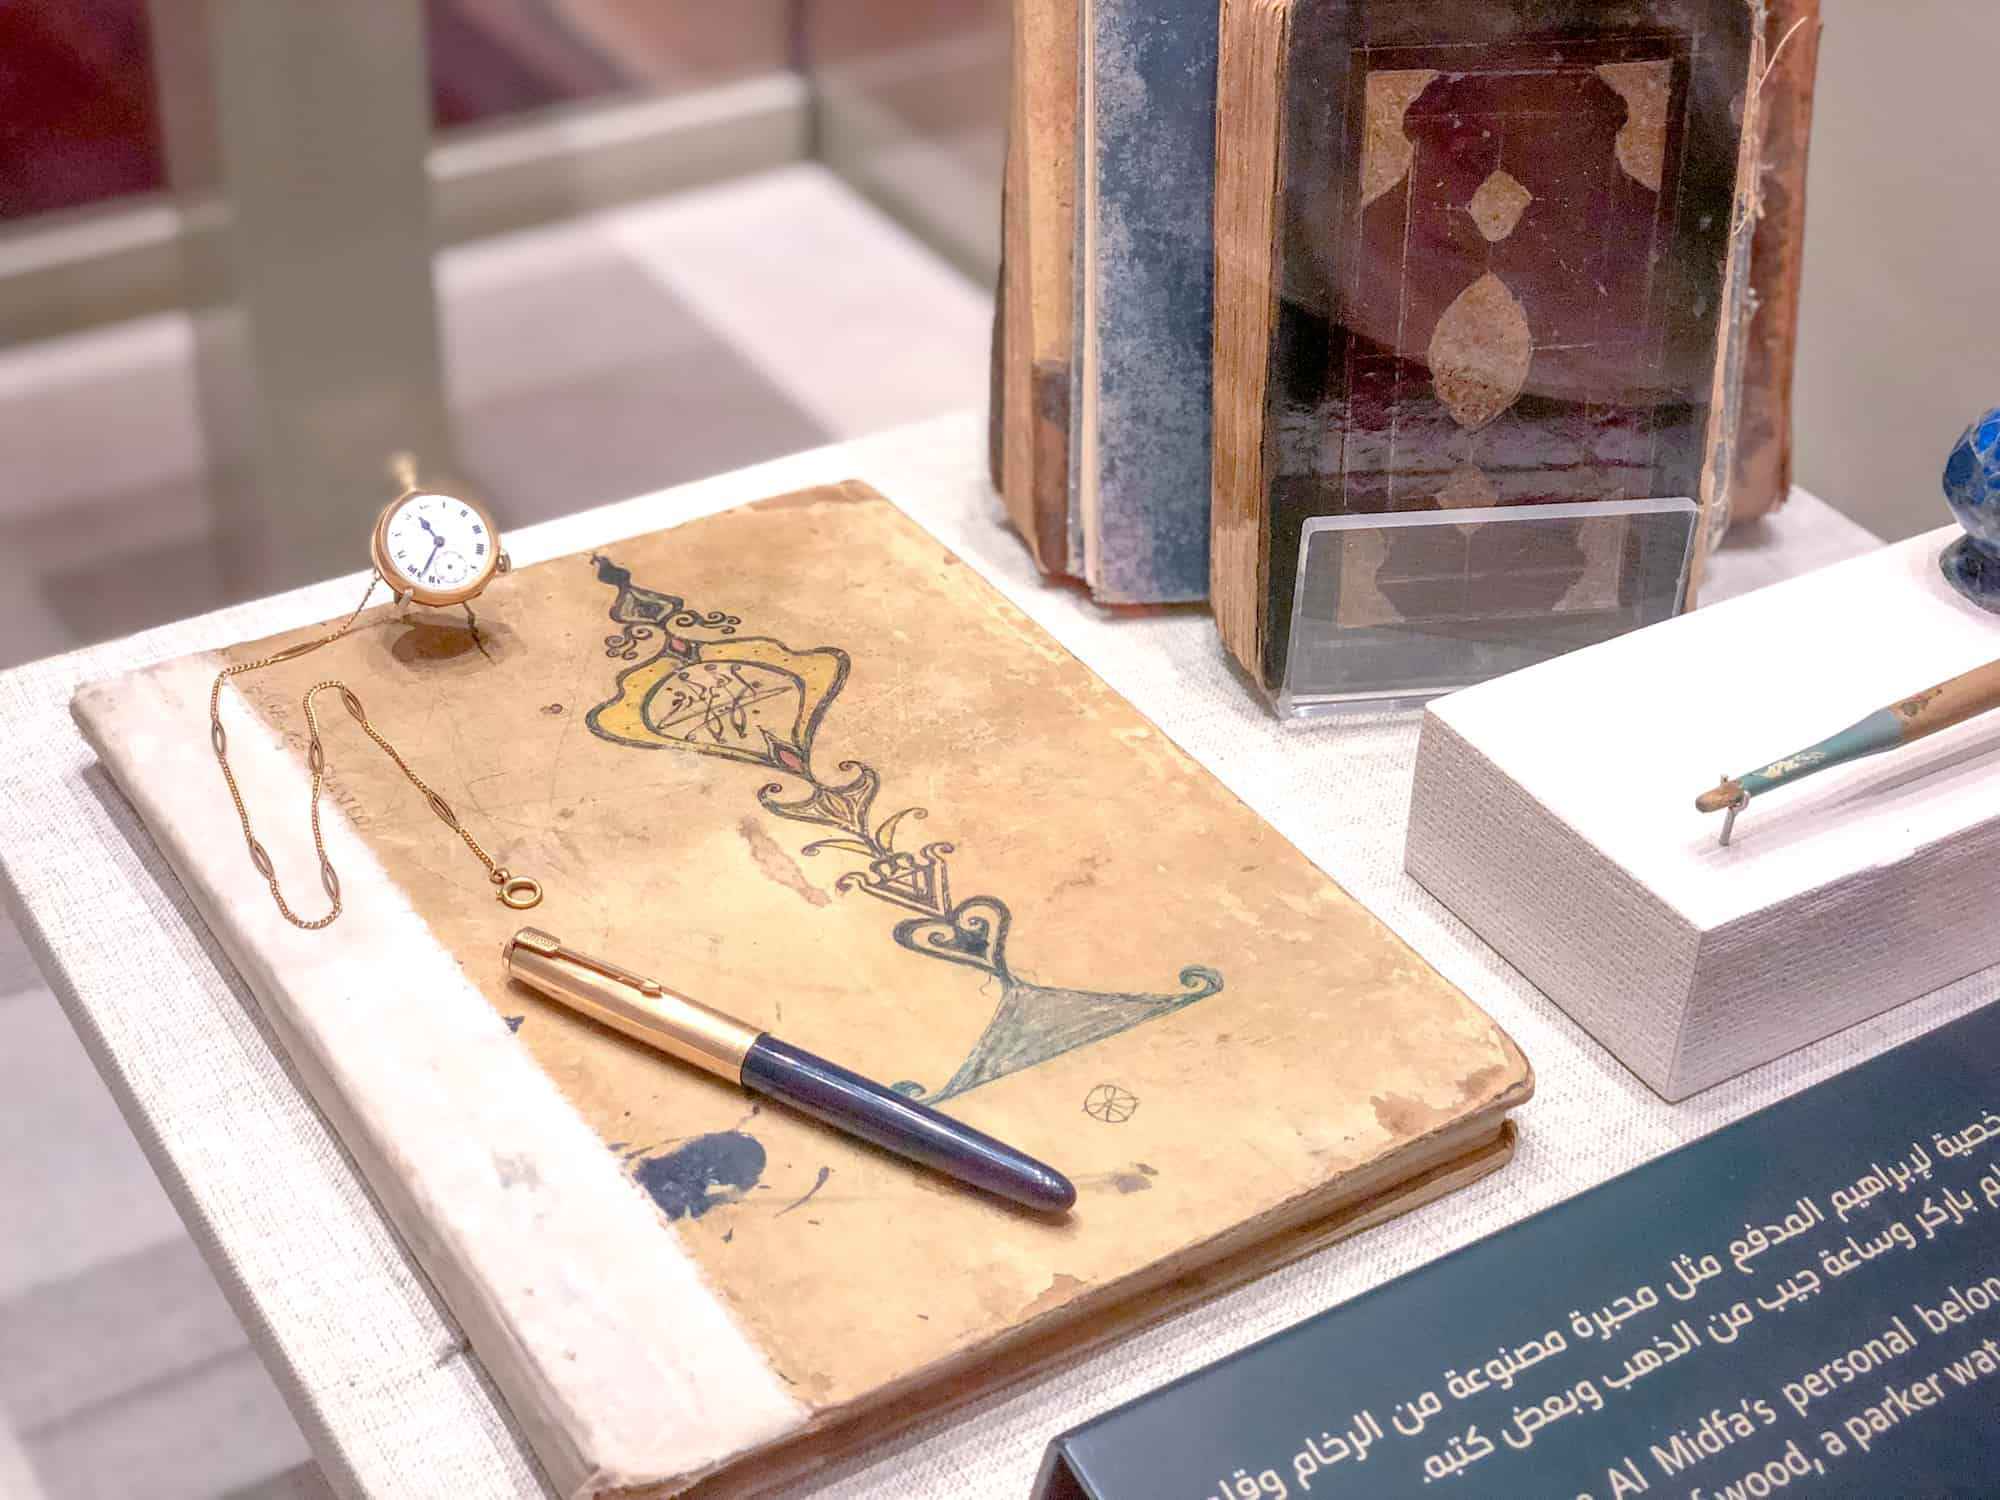 Interesting facts about Sharjah - books and literature